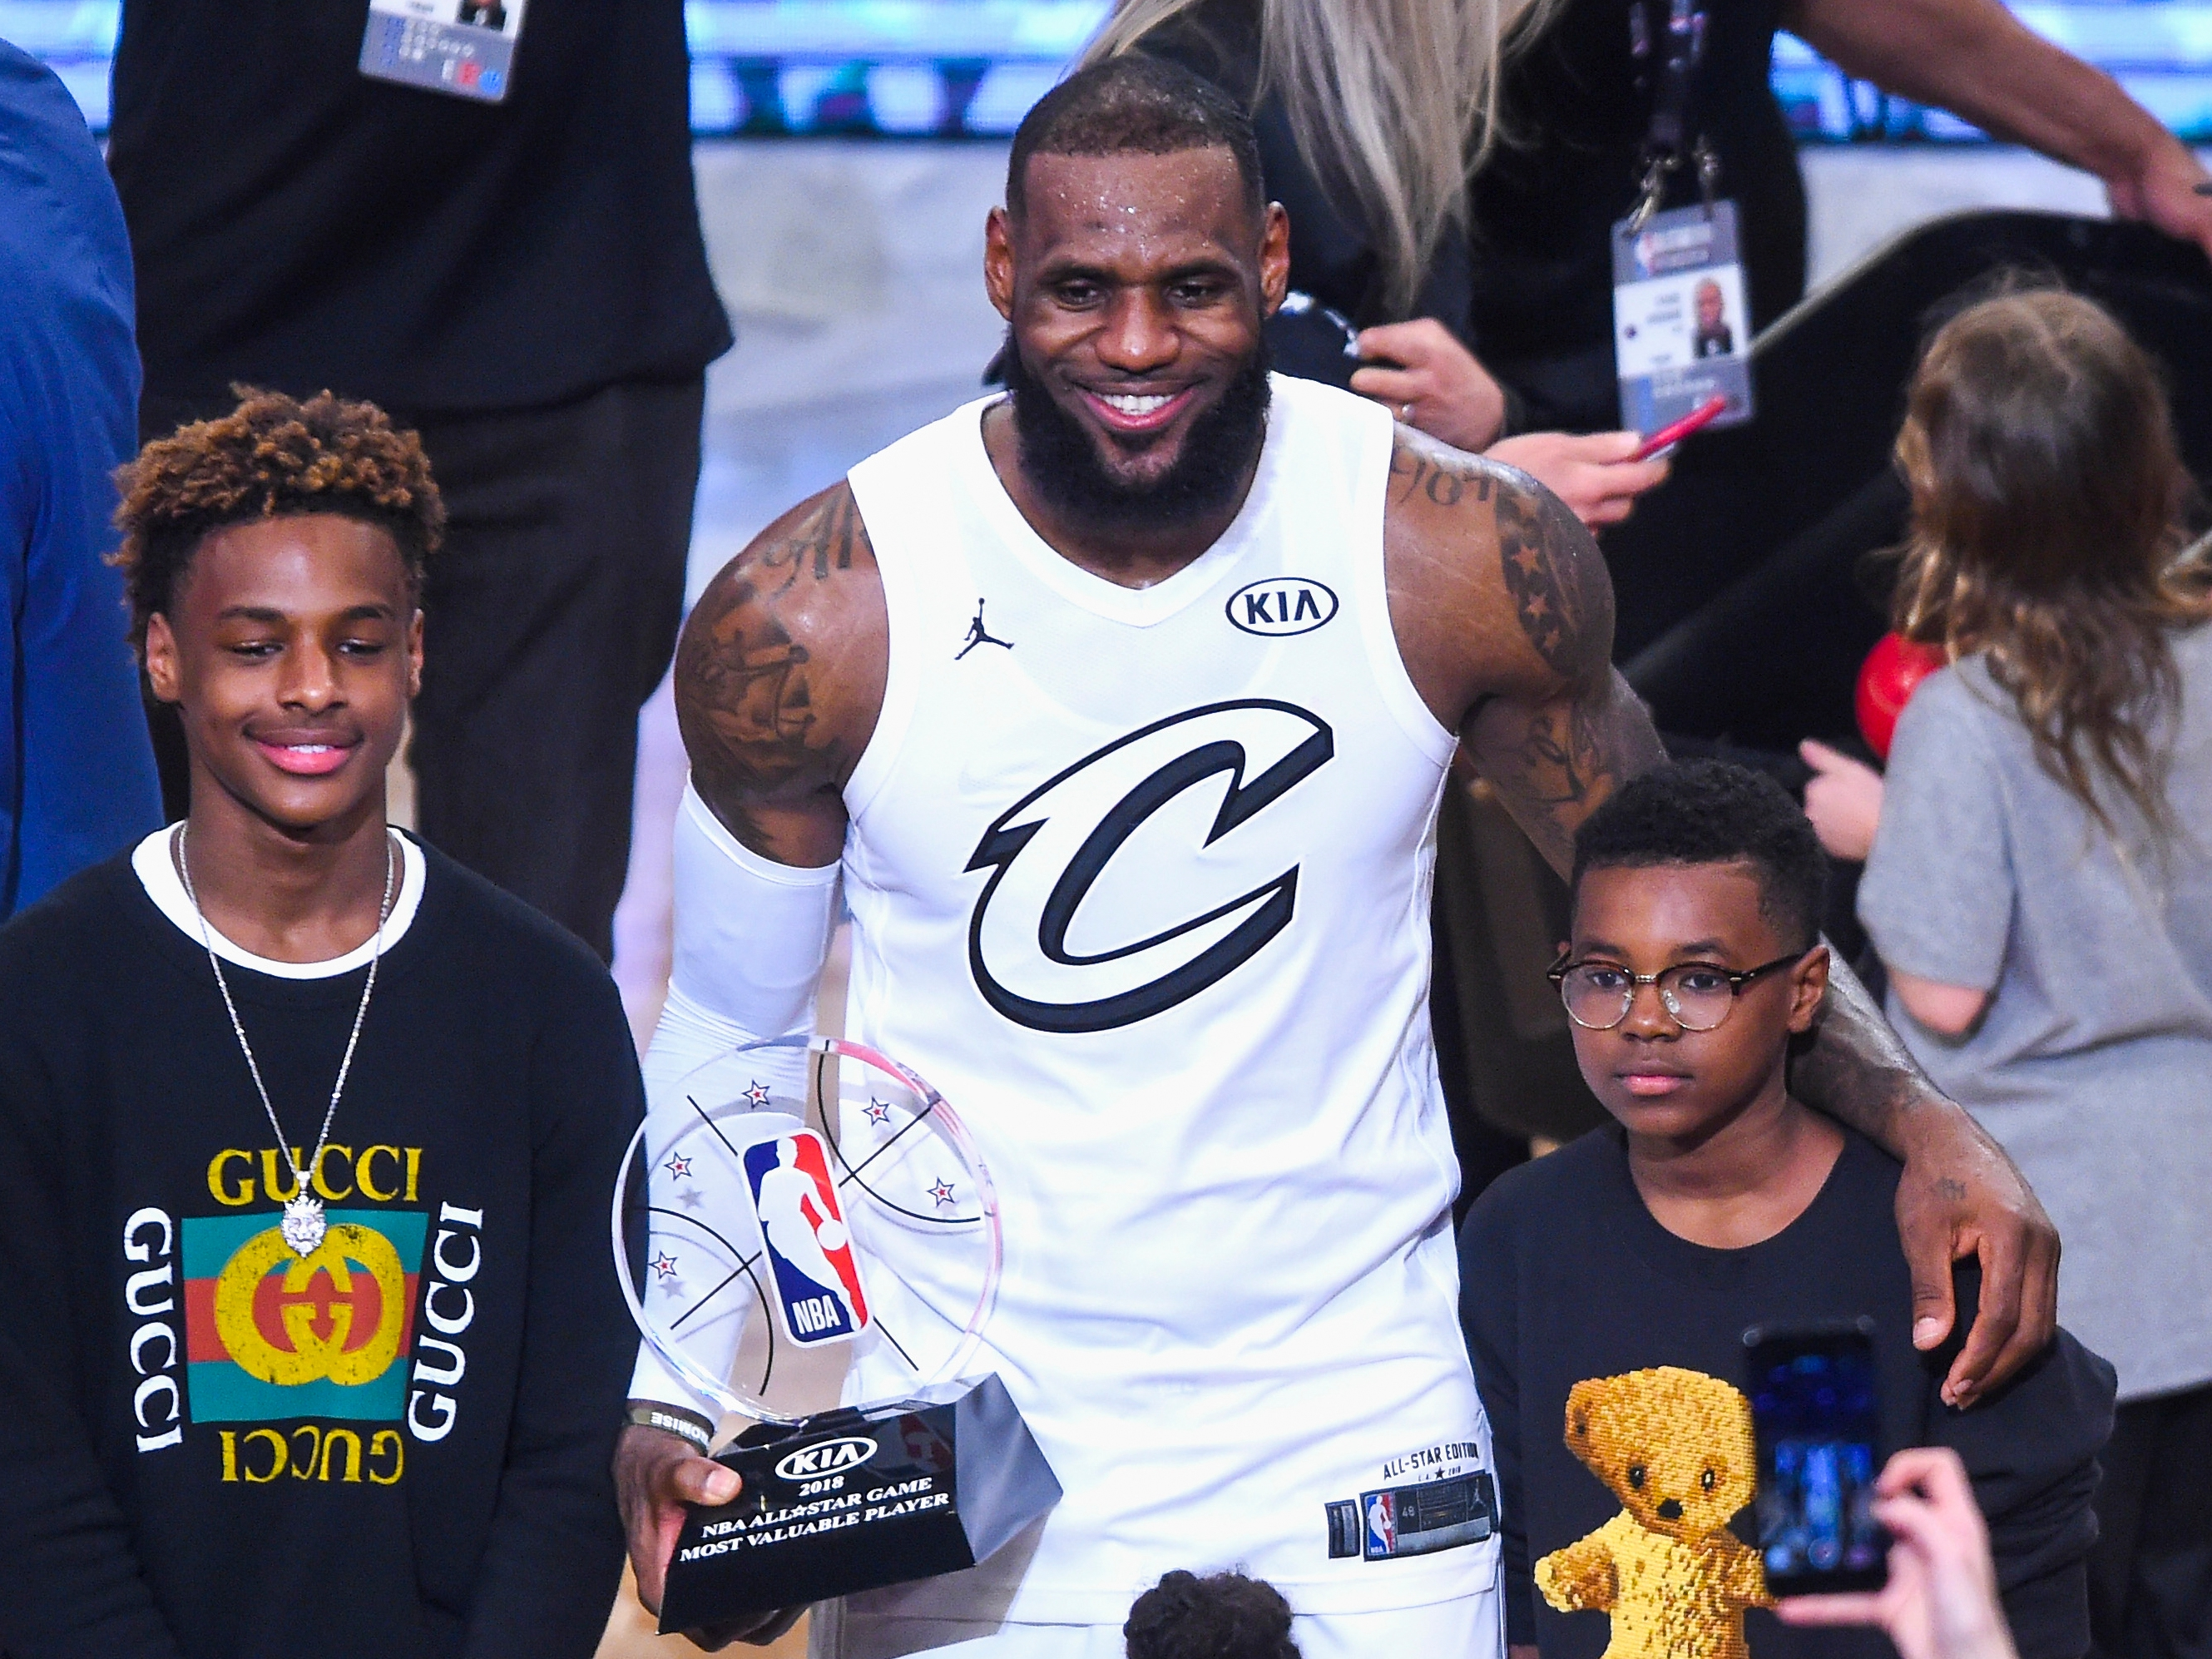 Sons of LeBron James, Dwyane Wade to play together in high